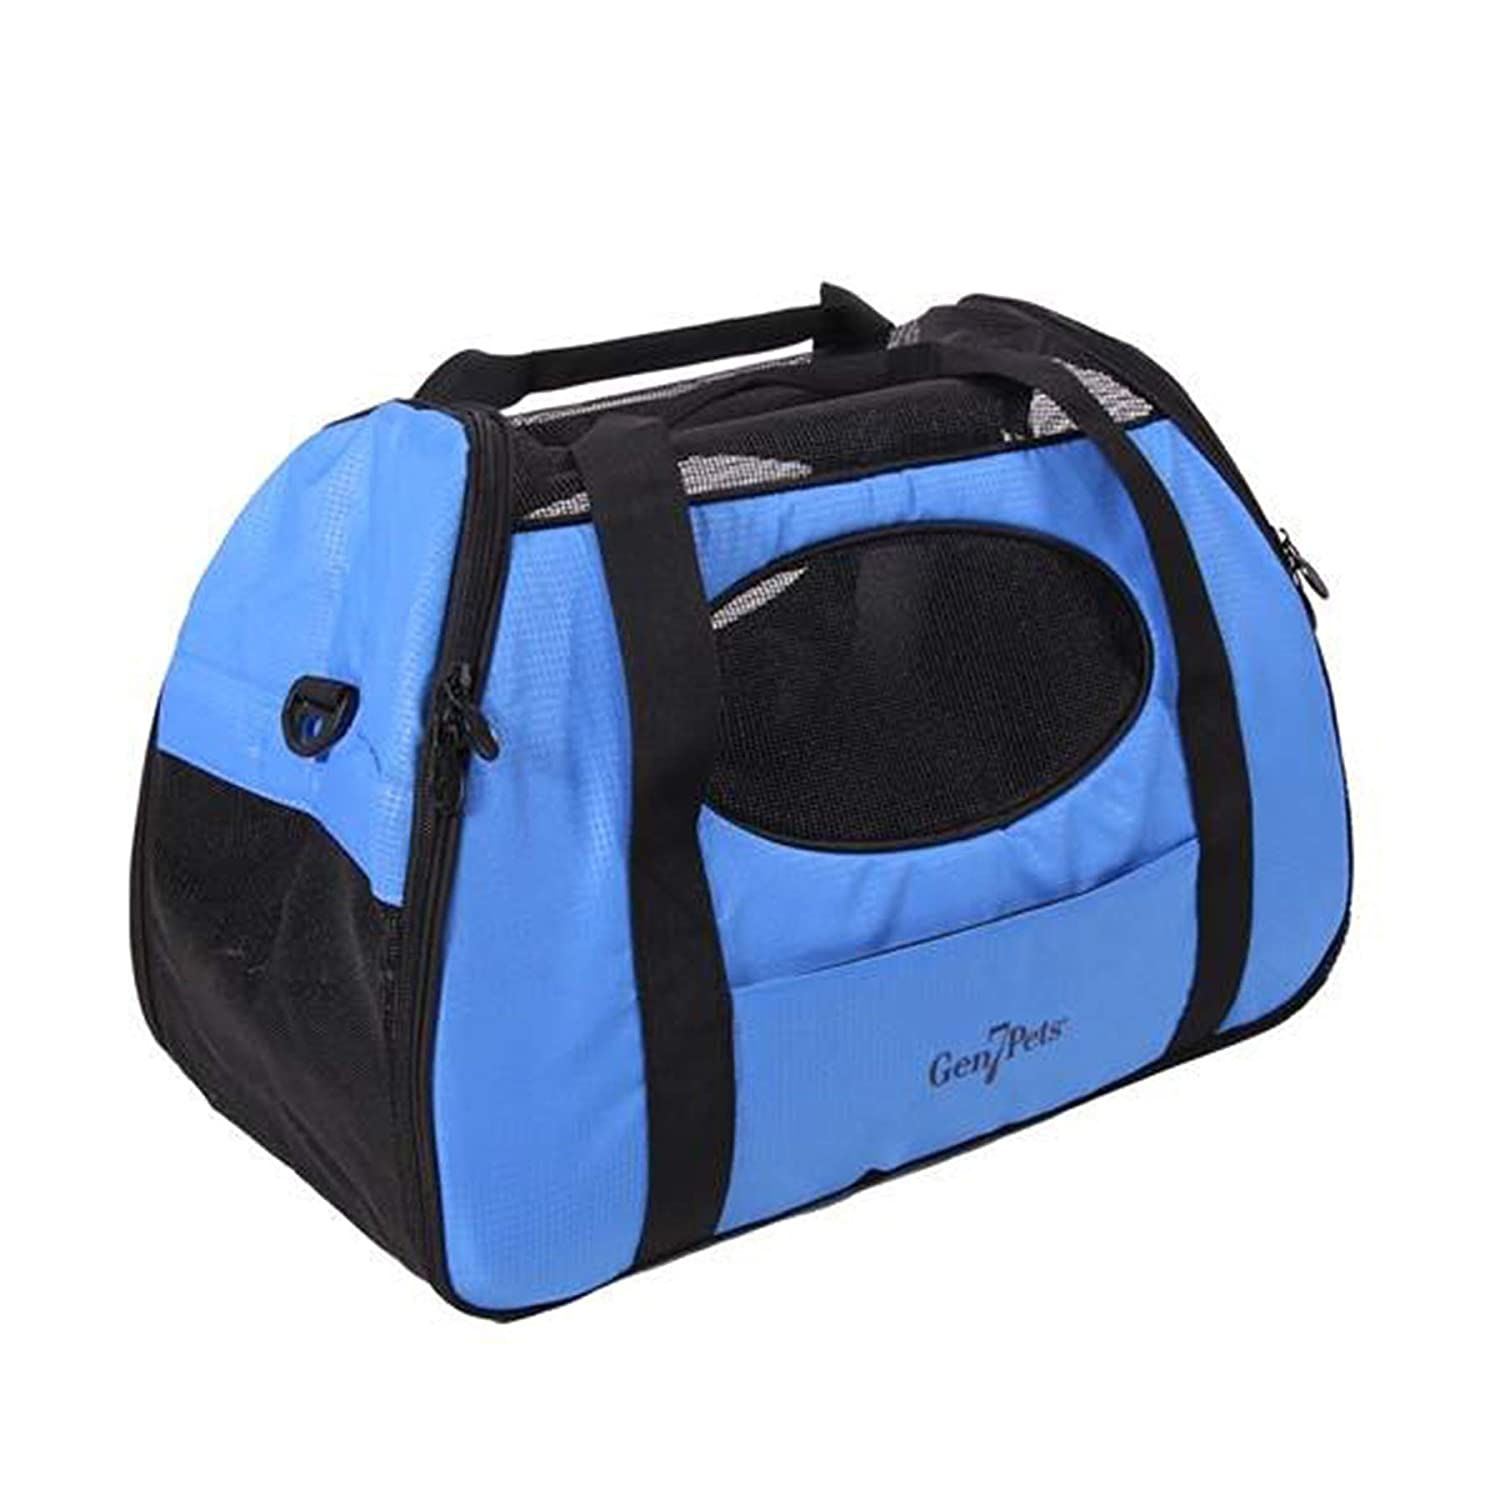 Trailblazer bluee Gen7Pets G1020TB Carry-Me Pet Carrier, Trailblazer bluee